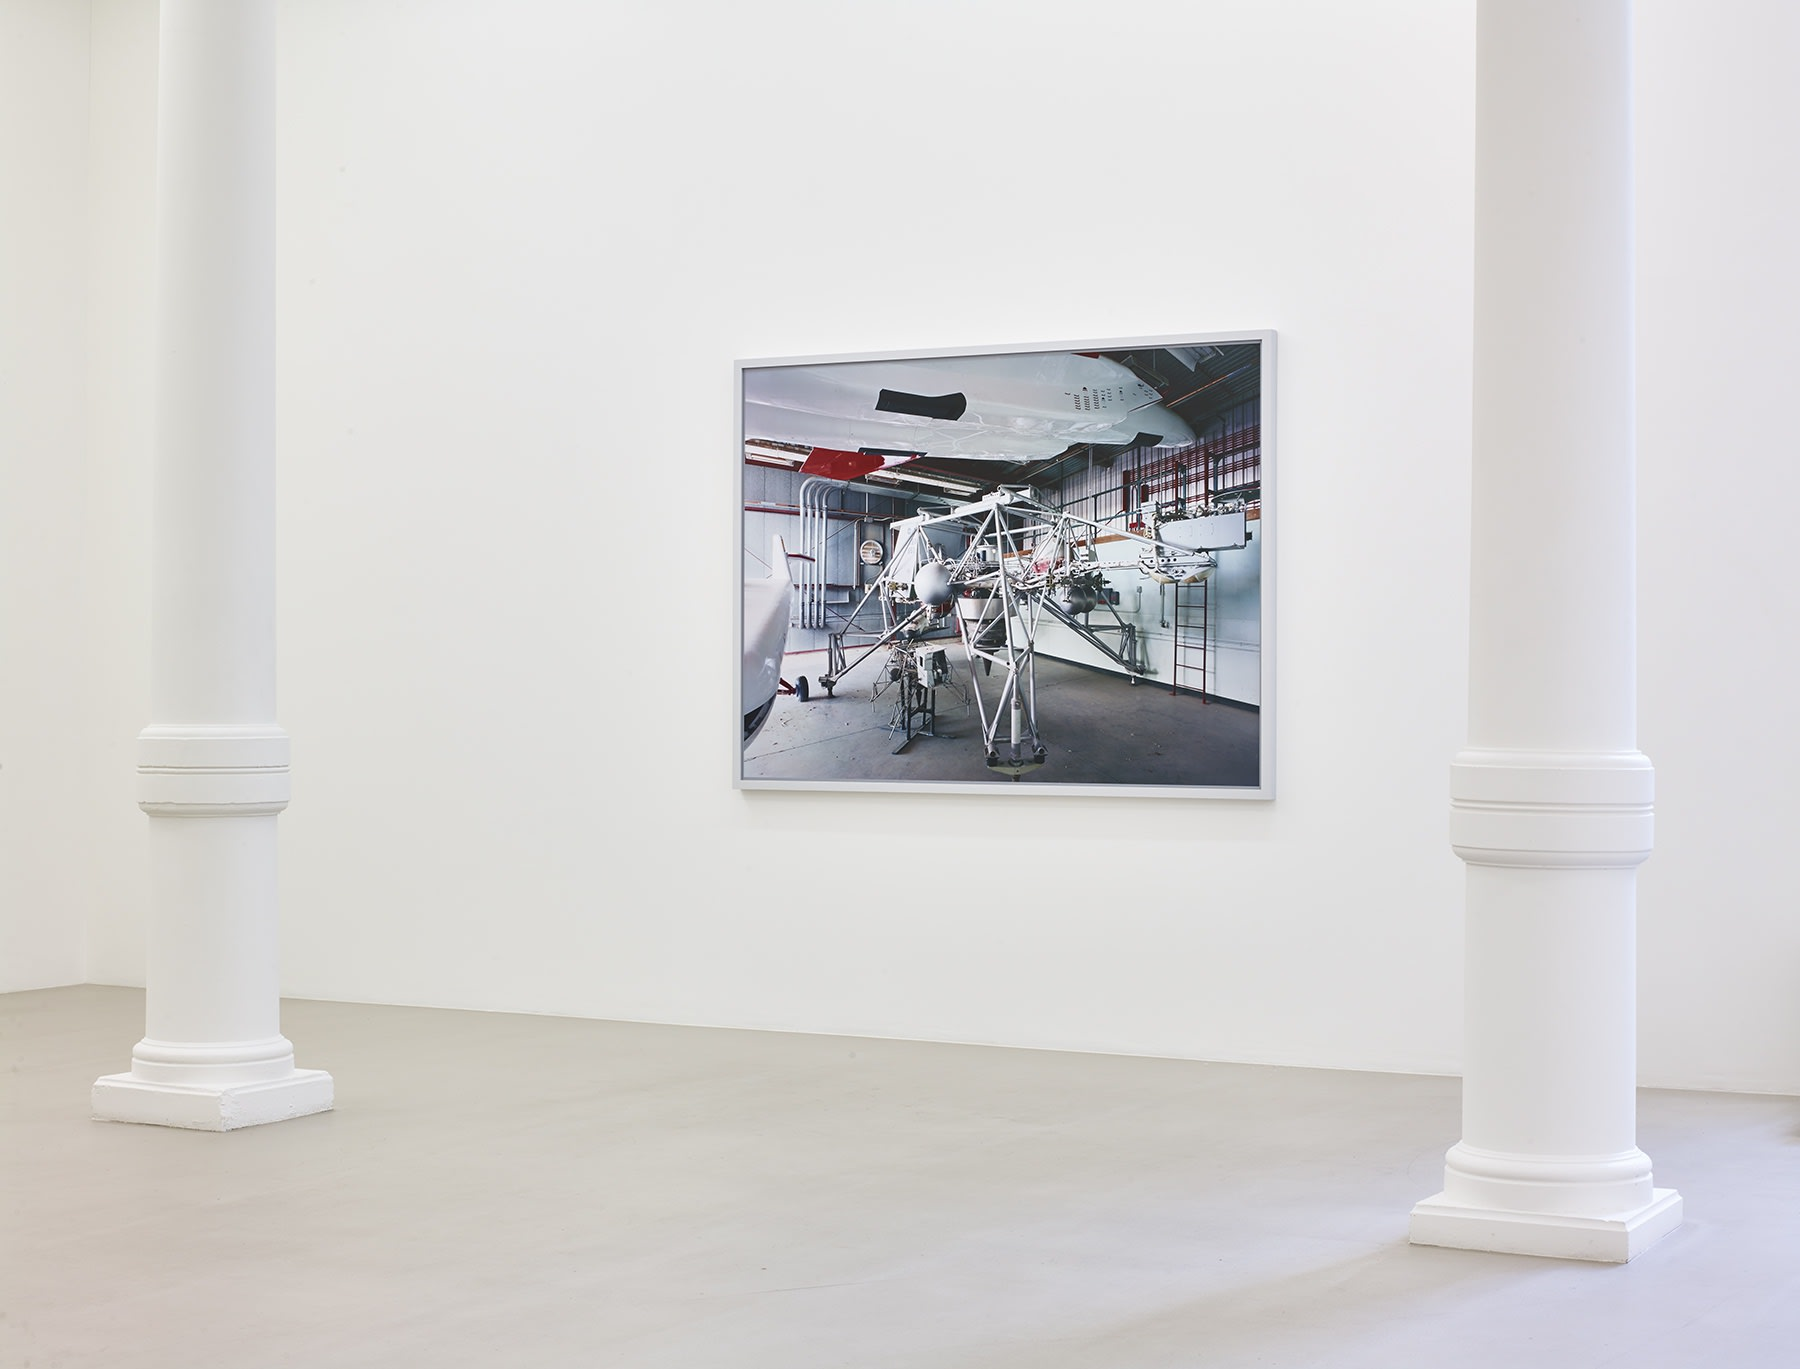 In a white gallery space,  a photograph of an unidentified piece of machinery hangs on a white wall.